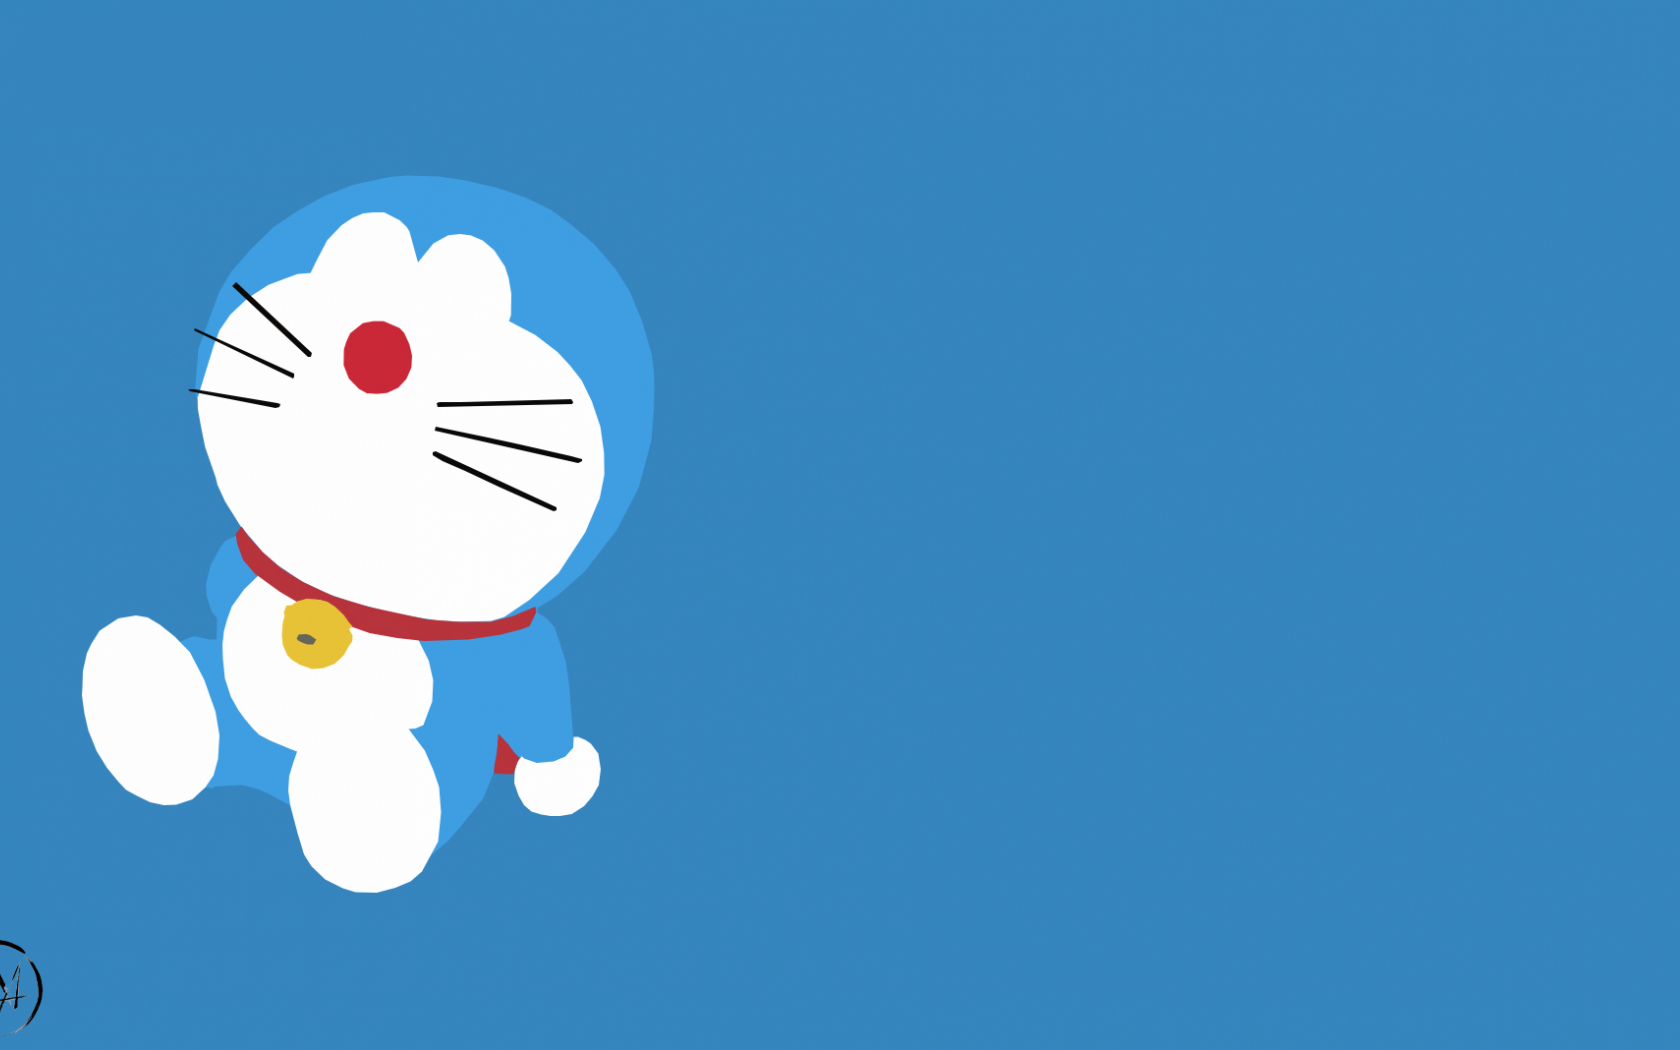 Free Download Doraemon Backgrounds [1900x1068] For